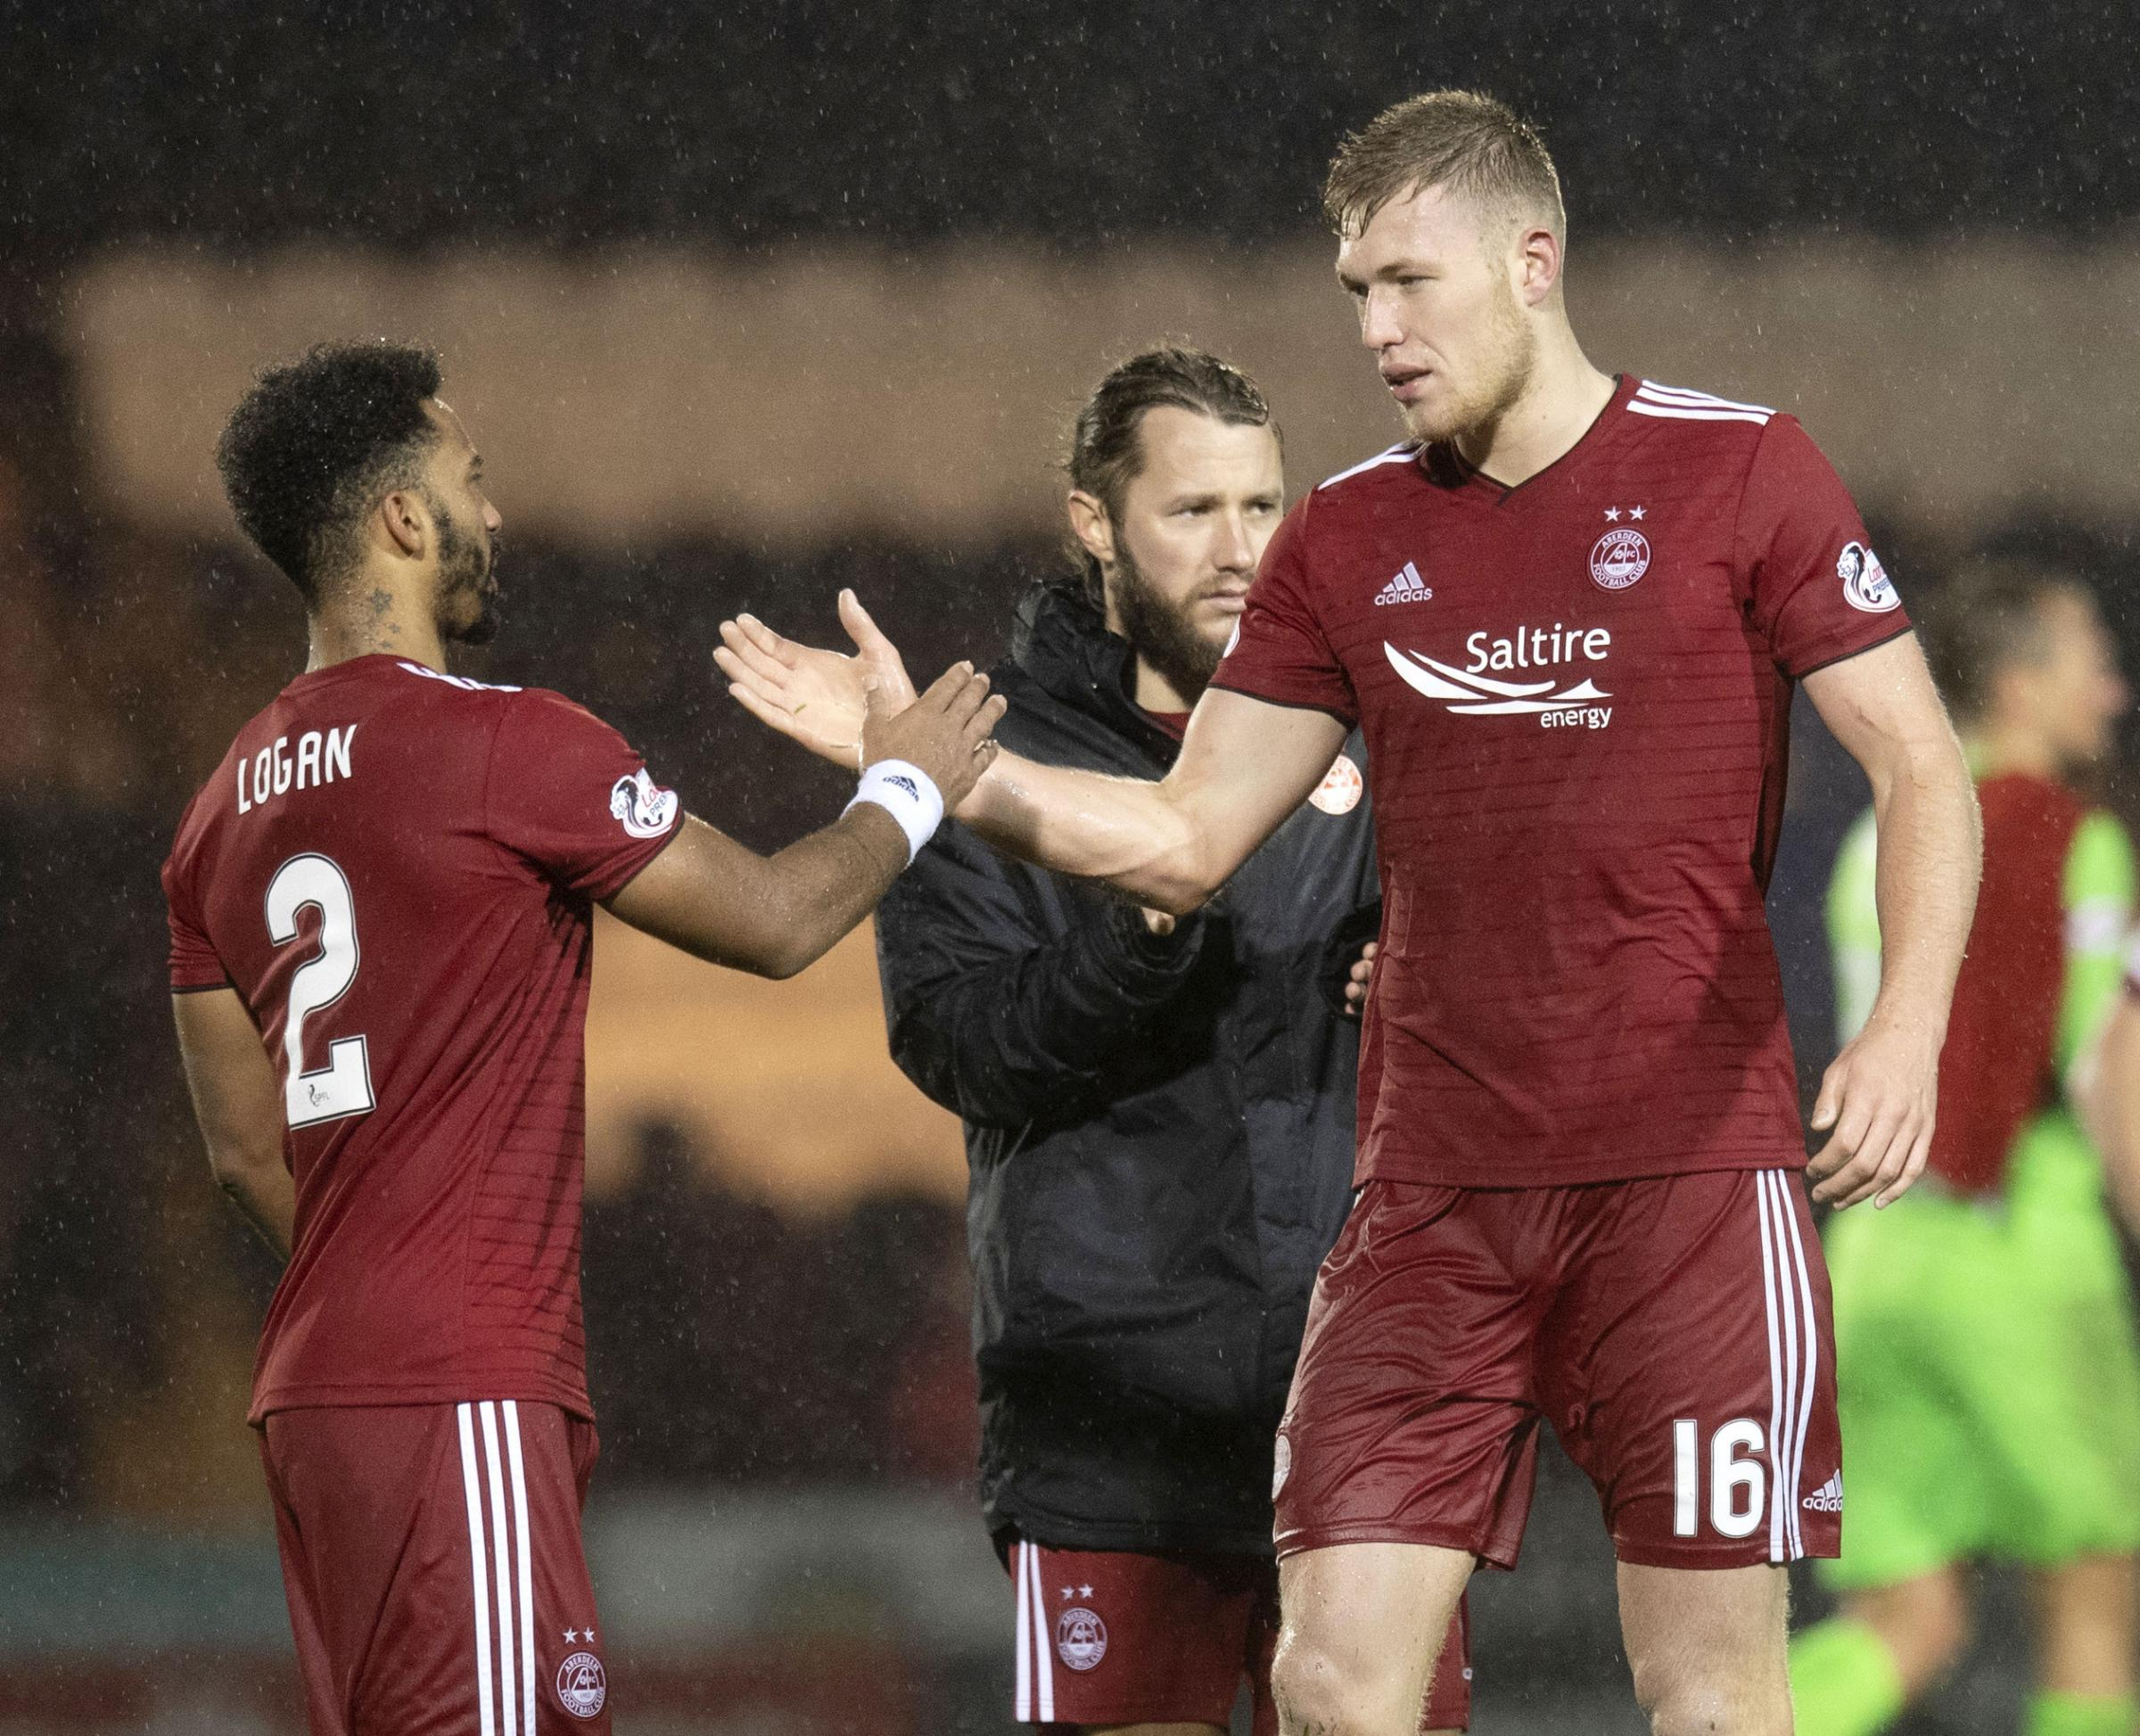 15/12/2018  LADBROKES PREMIERSHIP.ST MIRREN v ABERDEEN.SIMPLE DIGITAL ARENA - PAISLEY.Aberdeen's Shay Logan and Sam Cosgrove at full time.